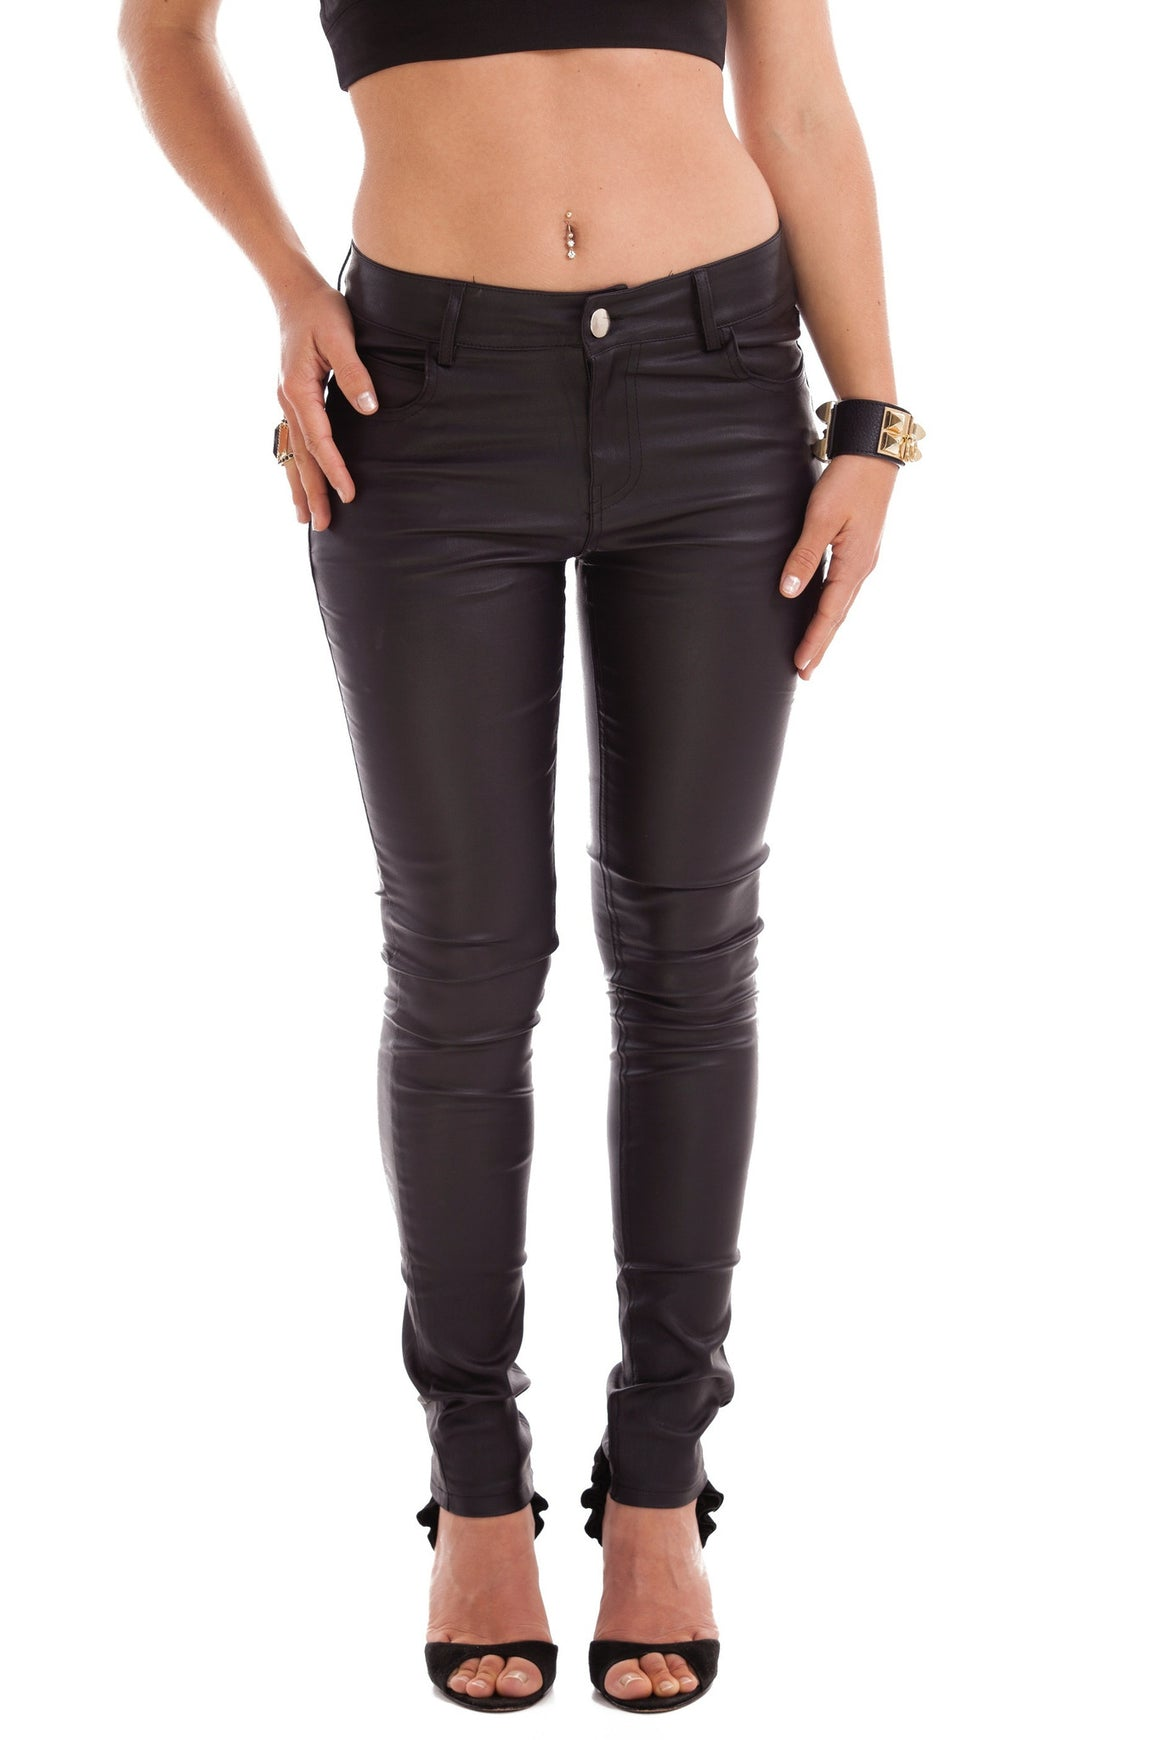 VIKA Wax Black Jeans